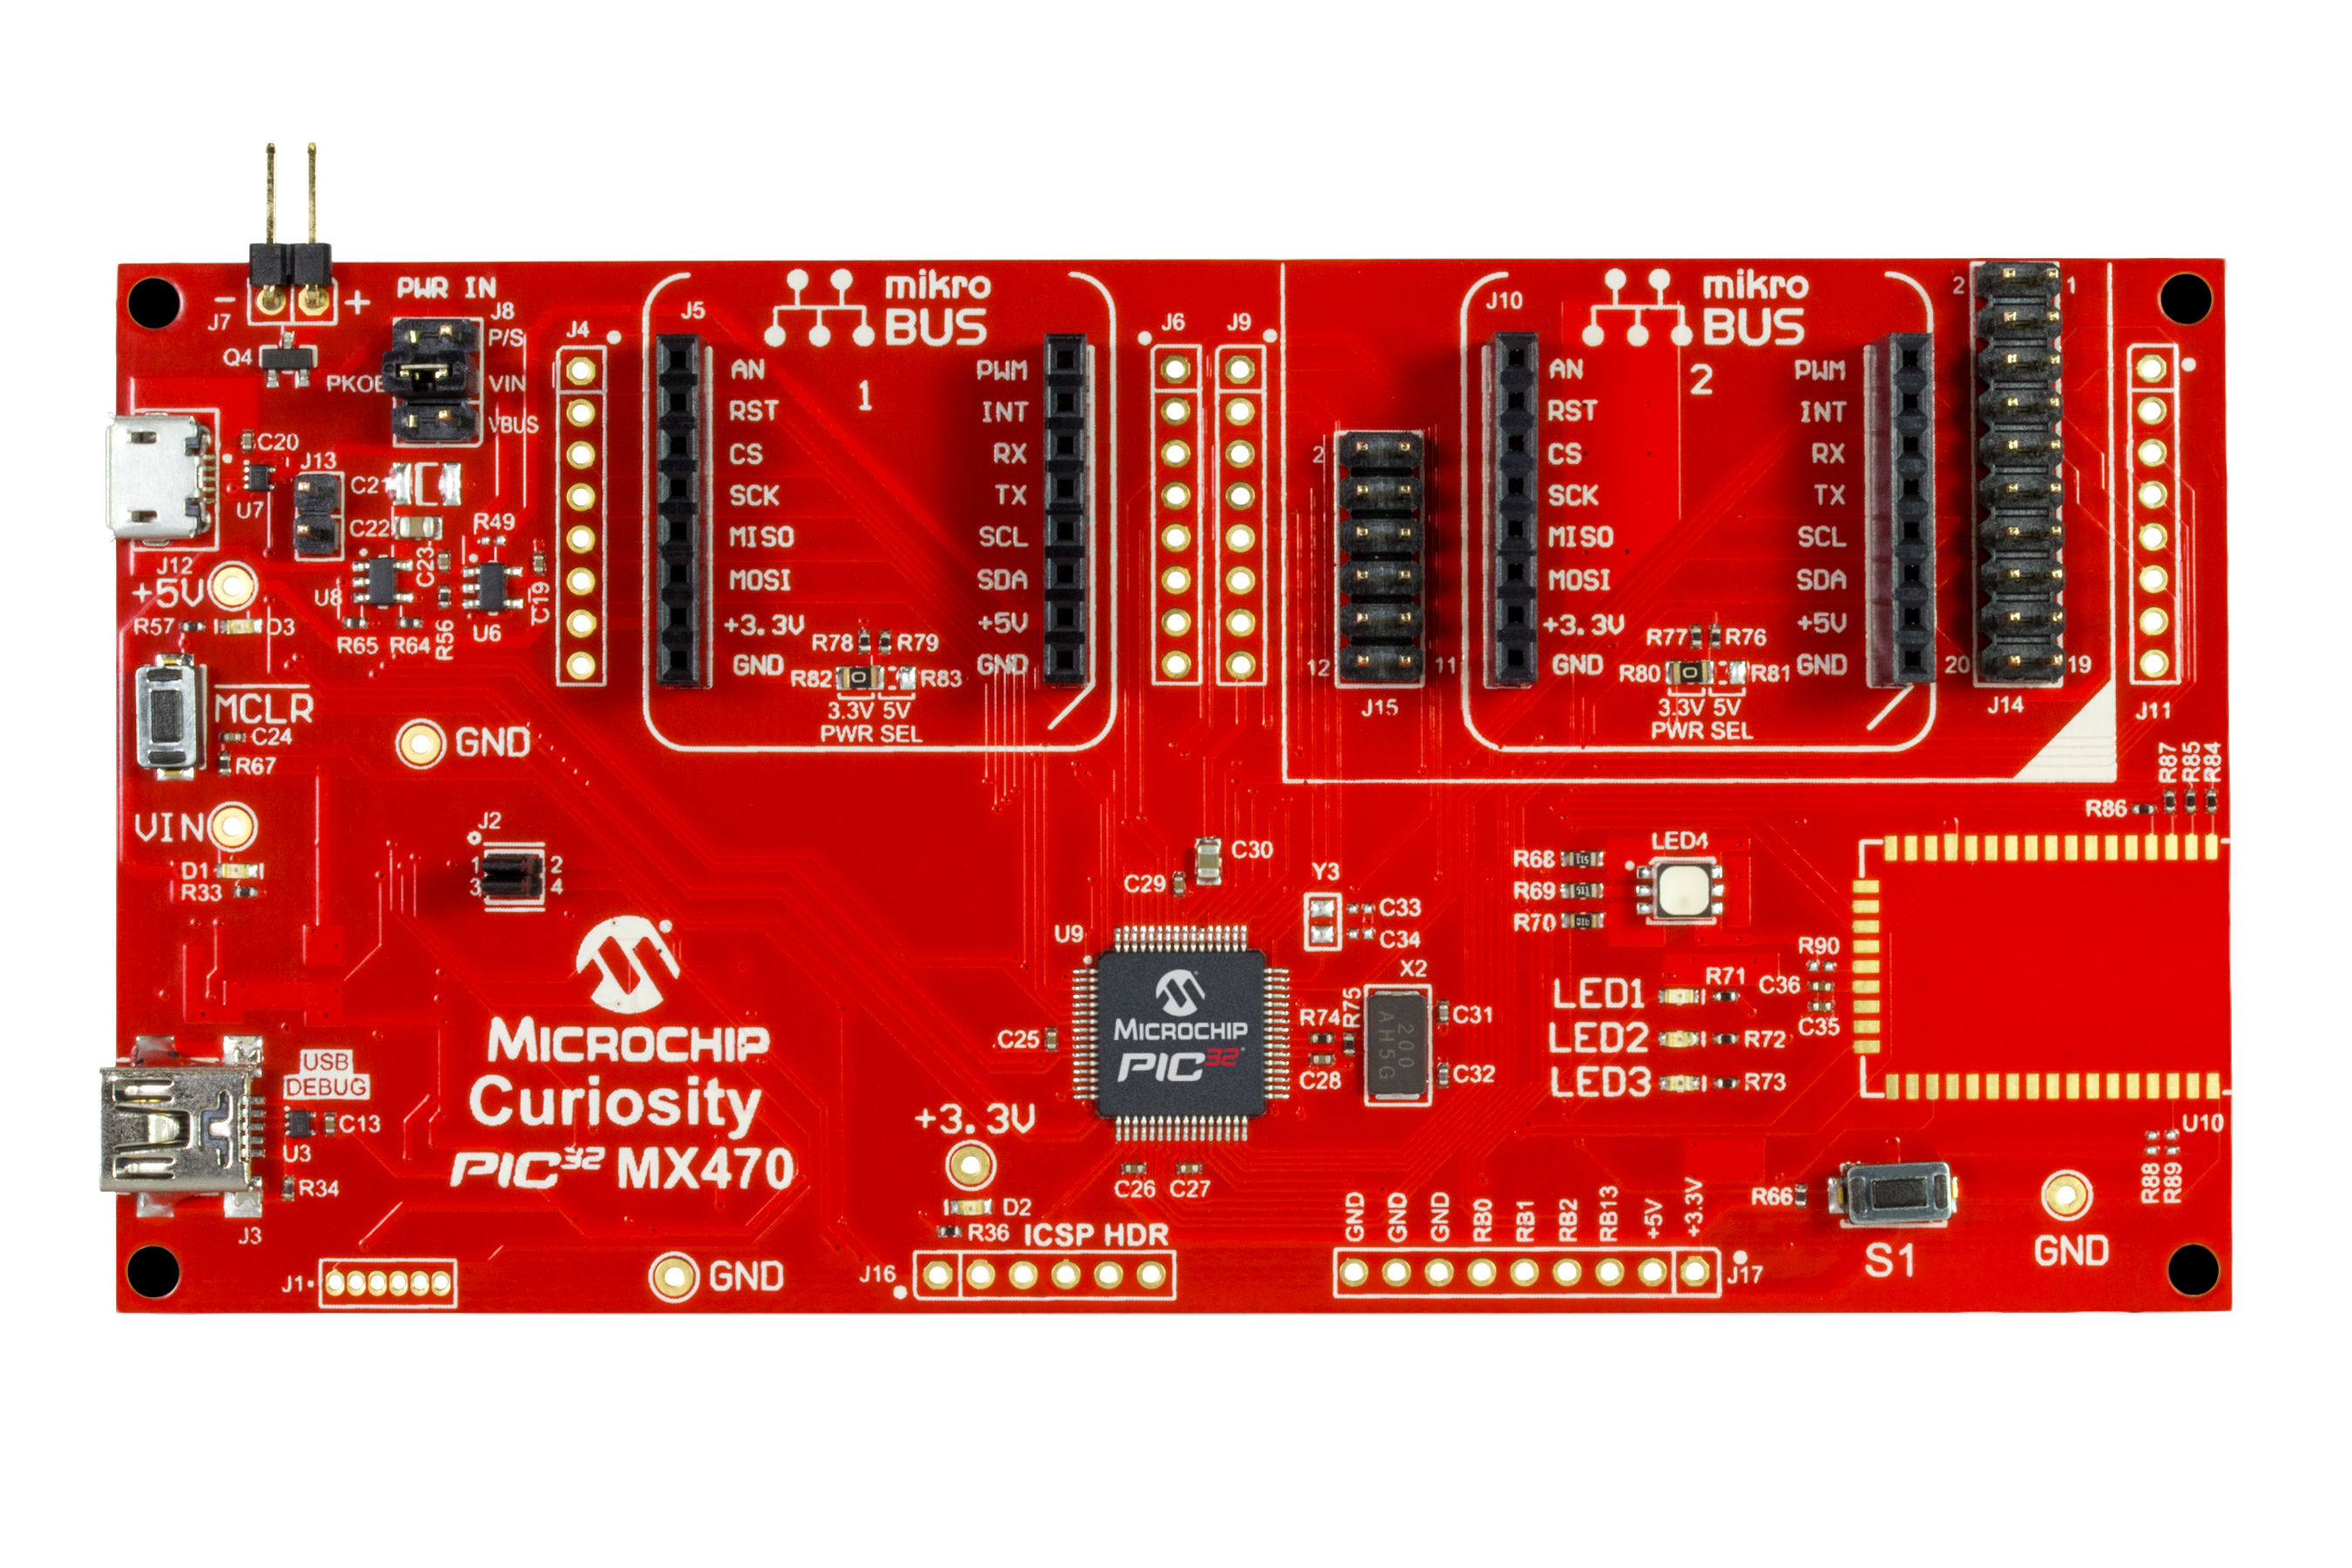 Architecture 32 Bit Pic Microcontrollers Microchip Technology Programmable Logic Content From Electronic Design Curiosity Pic32mx470 Development Board